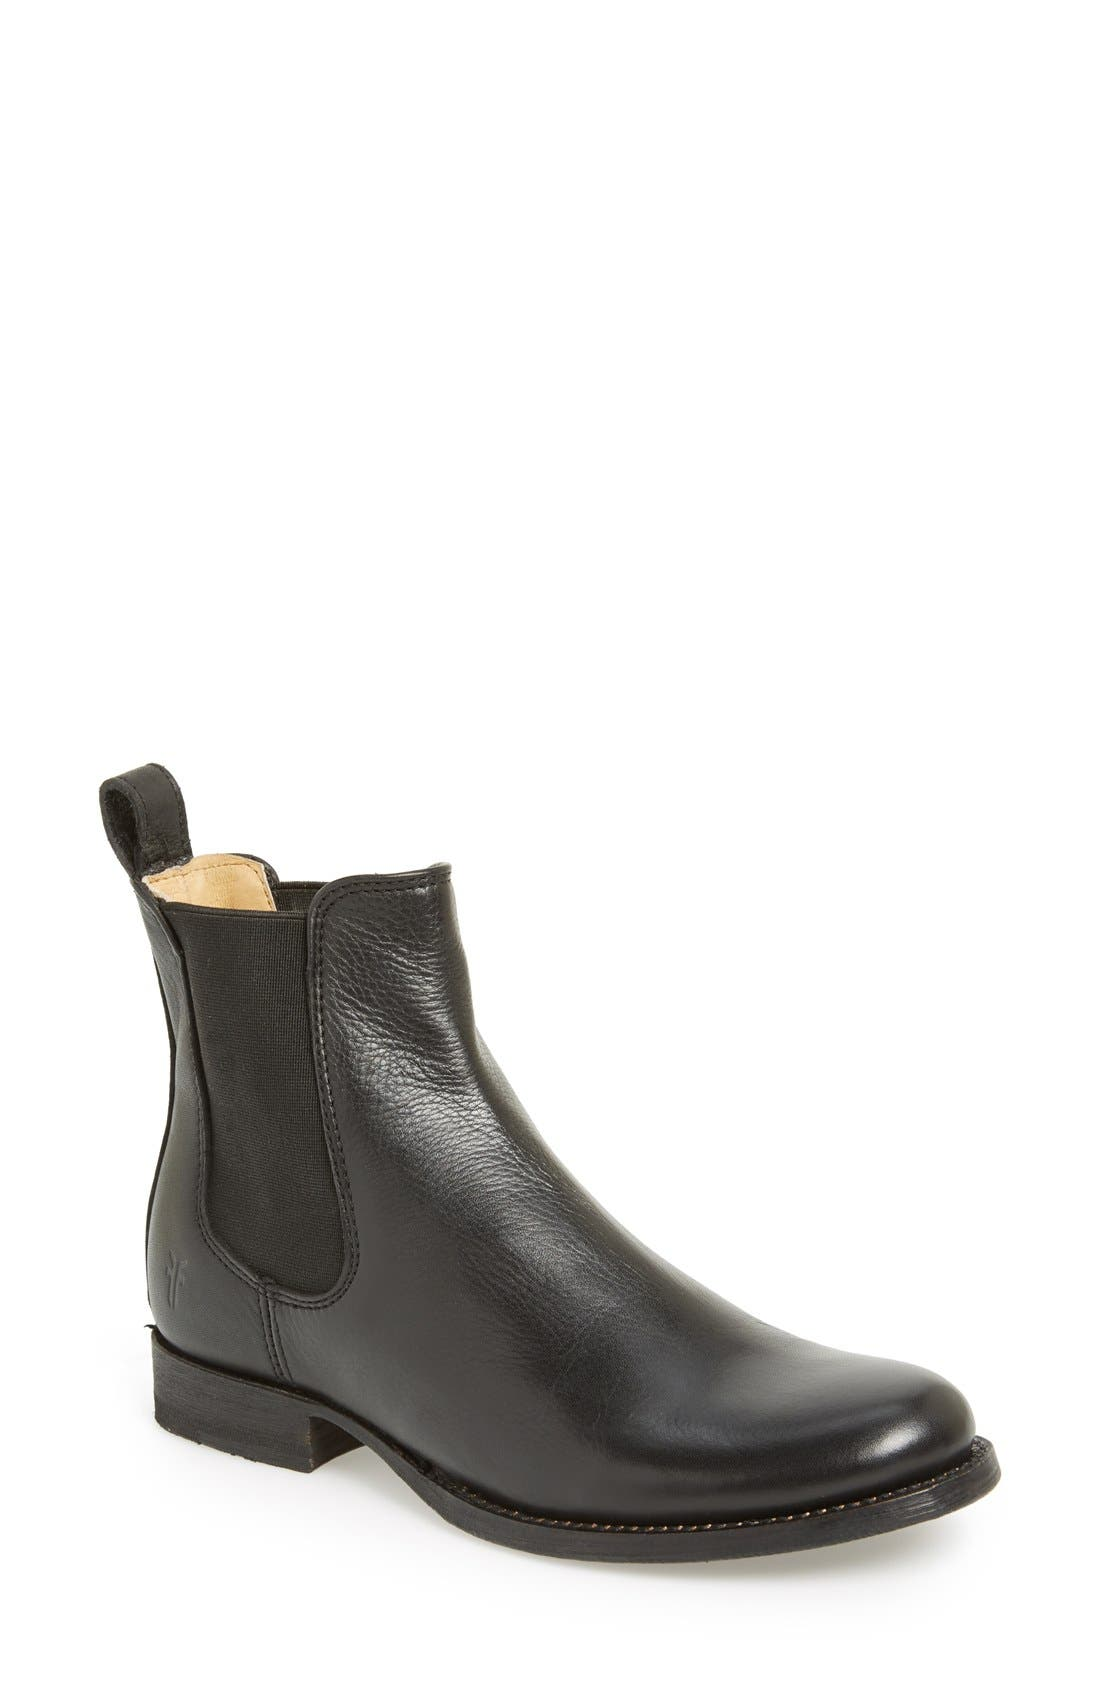 Main Image - Frye 'Erin' Leather Chelsea Boot (Women)